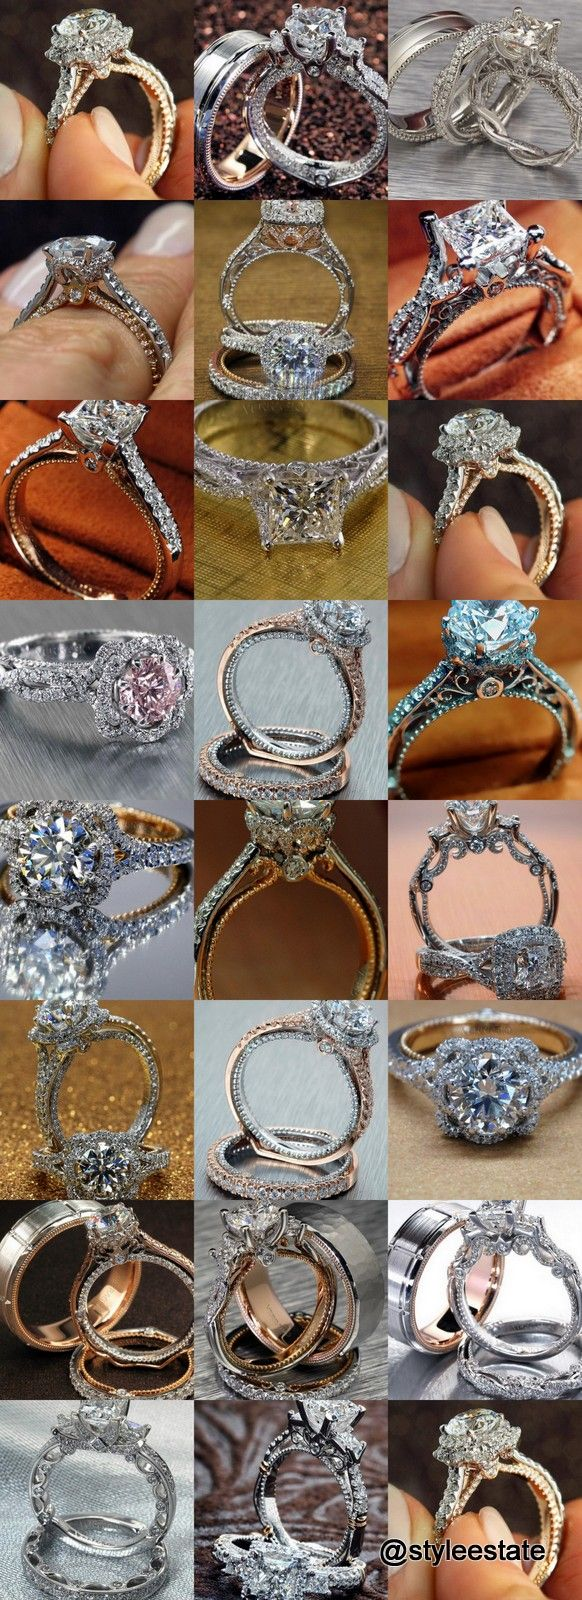 29 Stunning Verragio Diamond Engagement Rings.  29,that's almost like 1 for every day of the month. I could wear them all